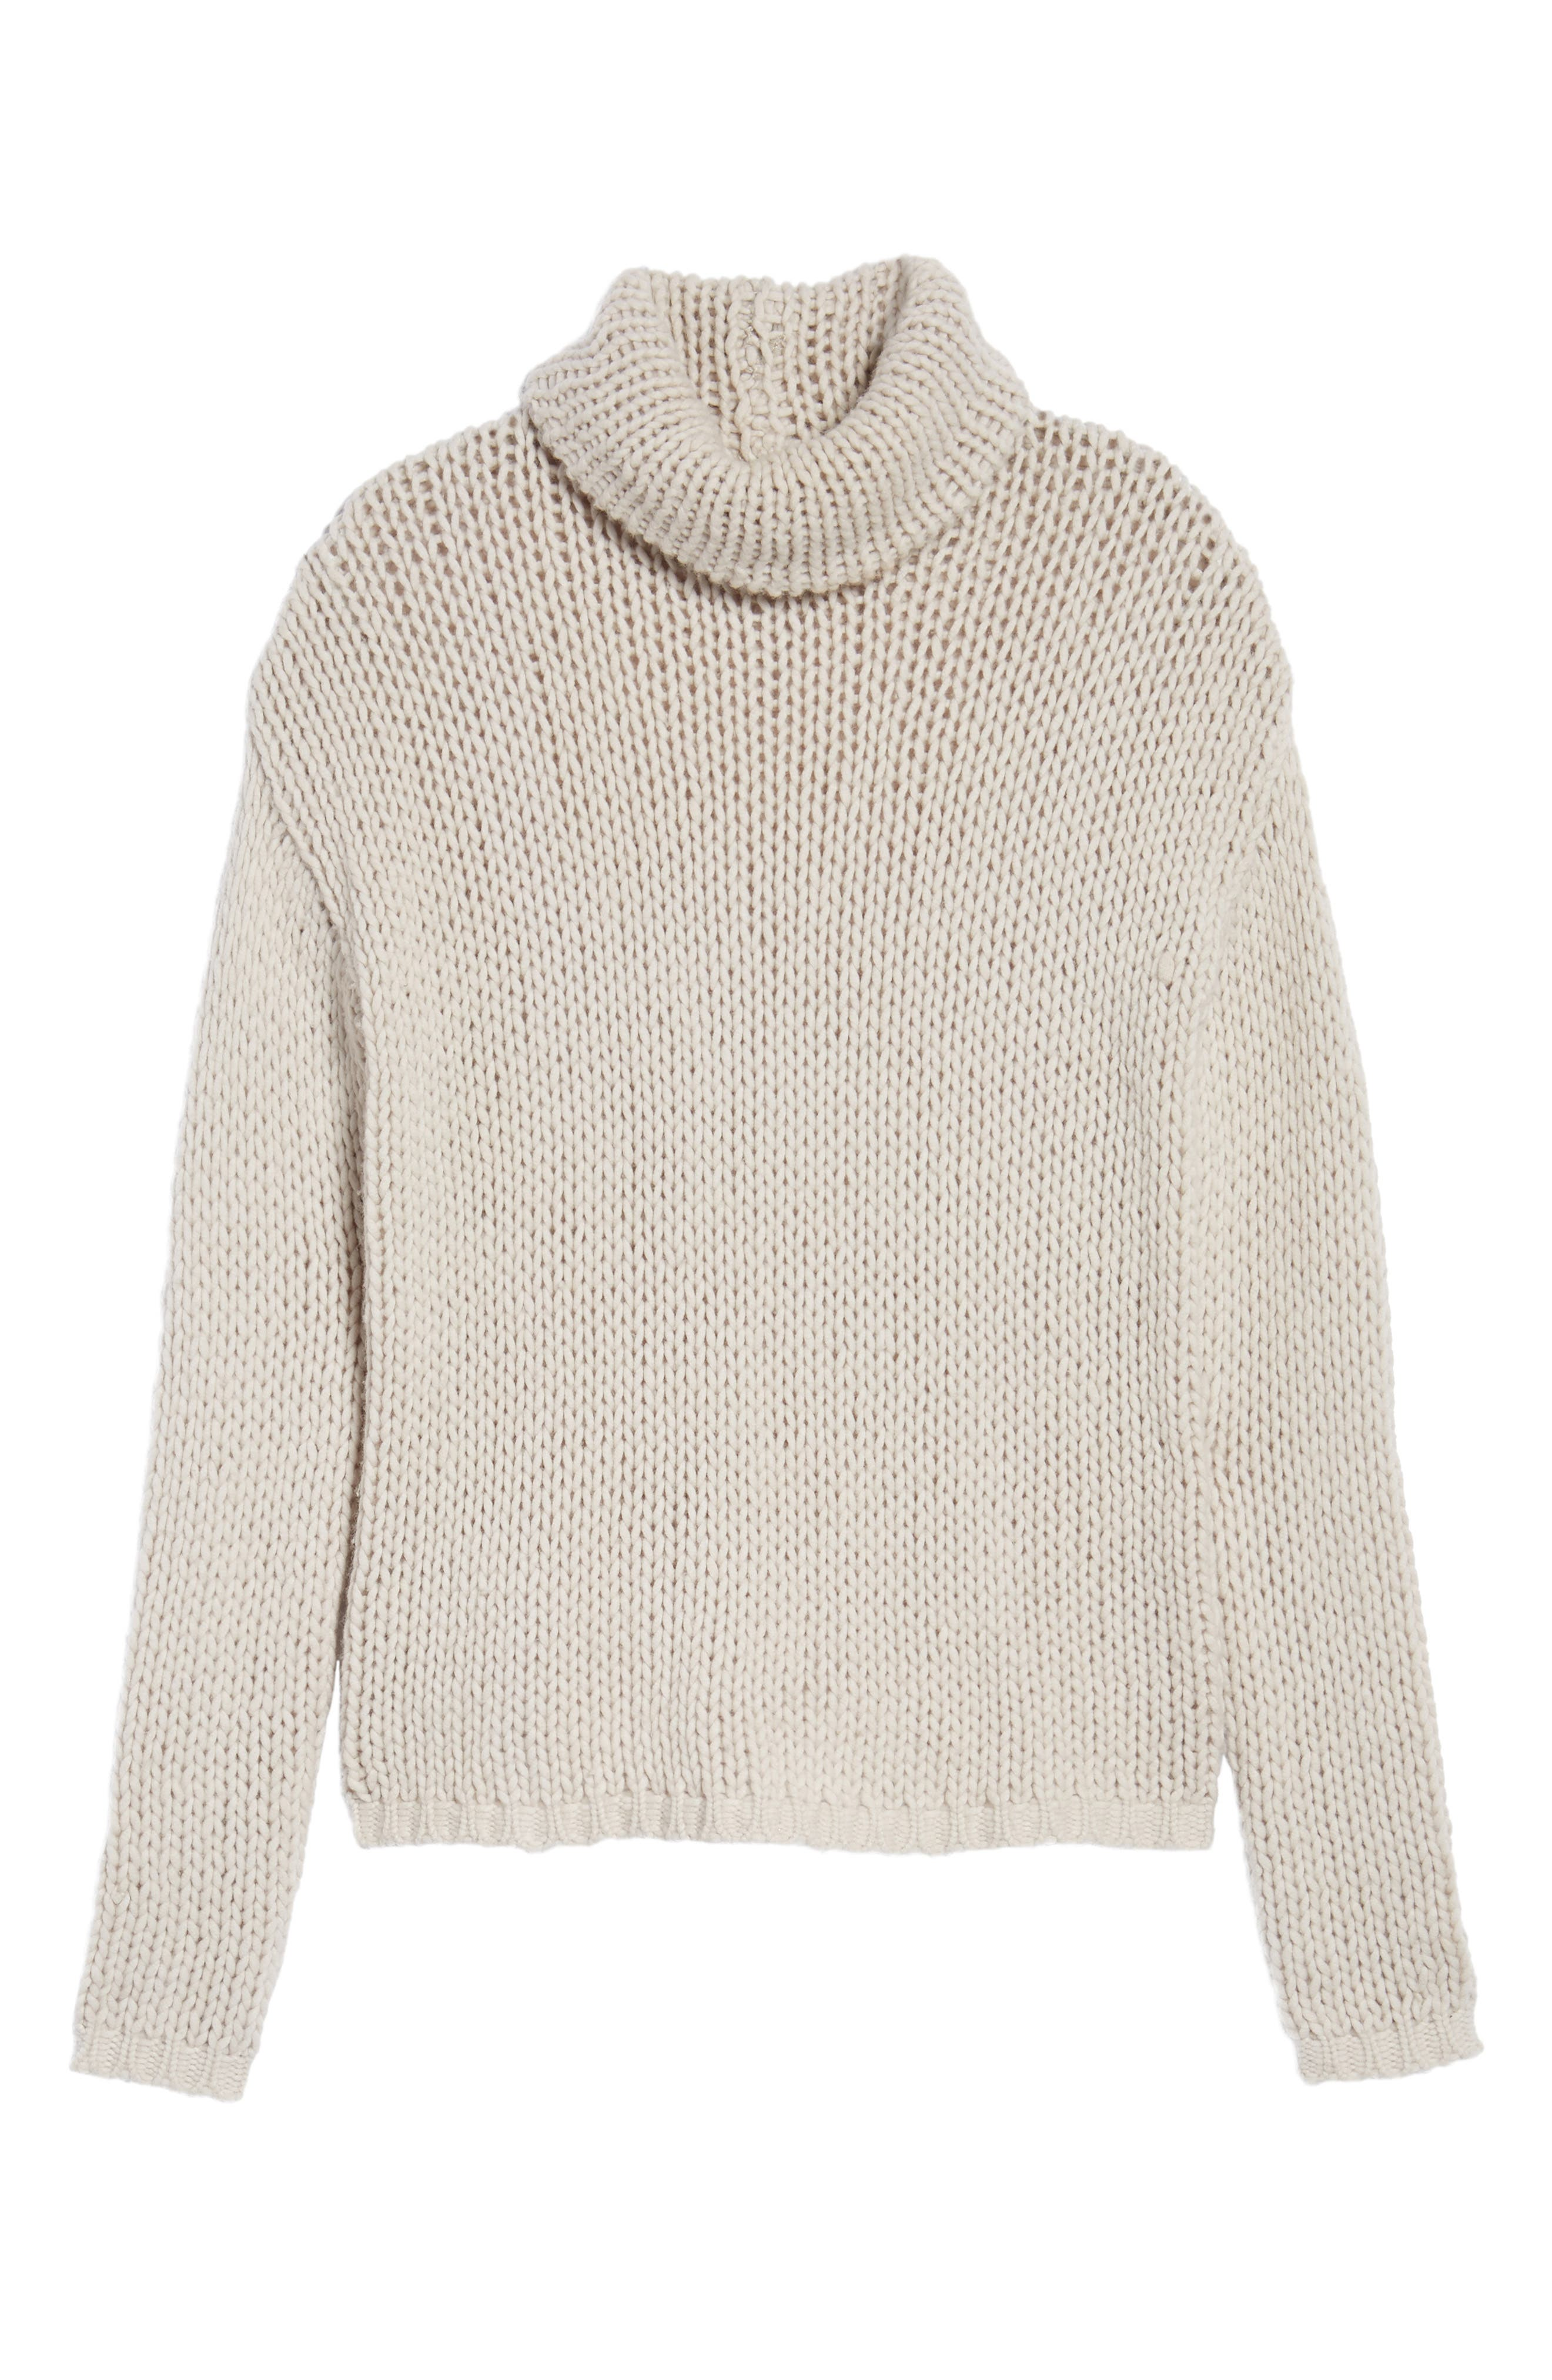 Hawken Turtleneck Sweater,                             Alternate thumbnail 6, color,                             Pearl